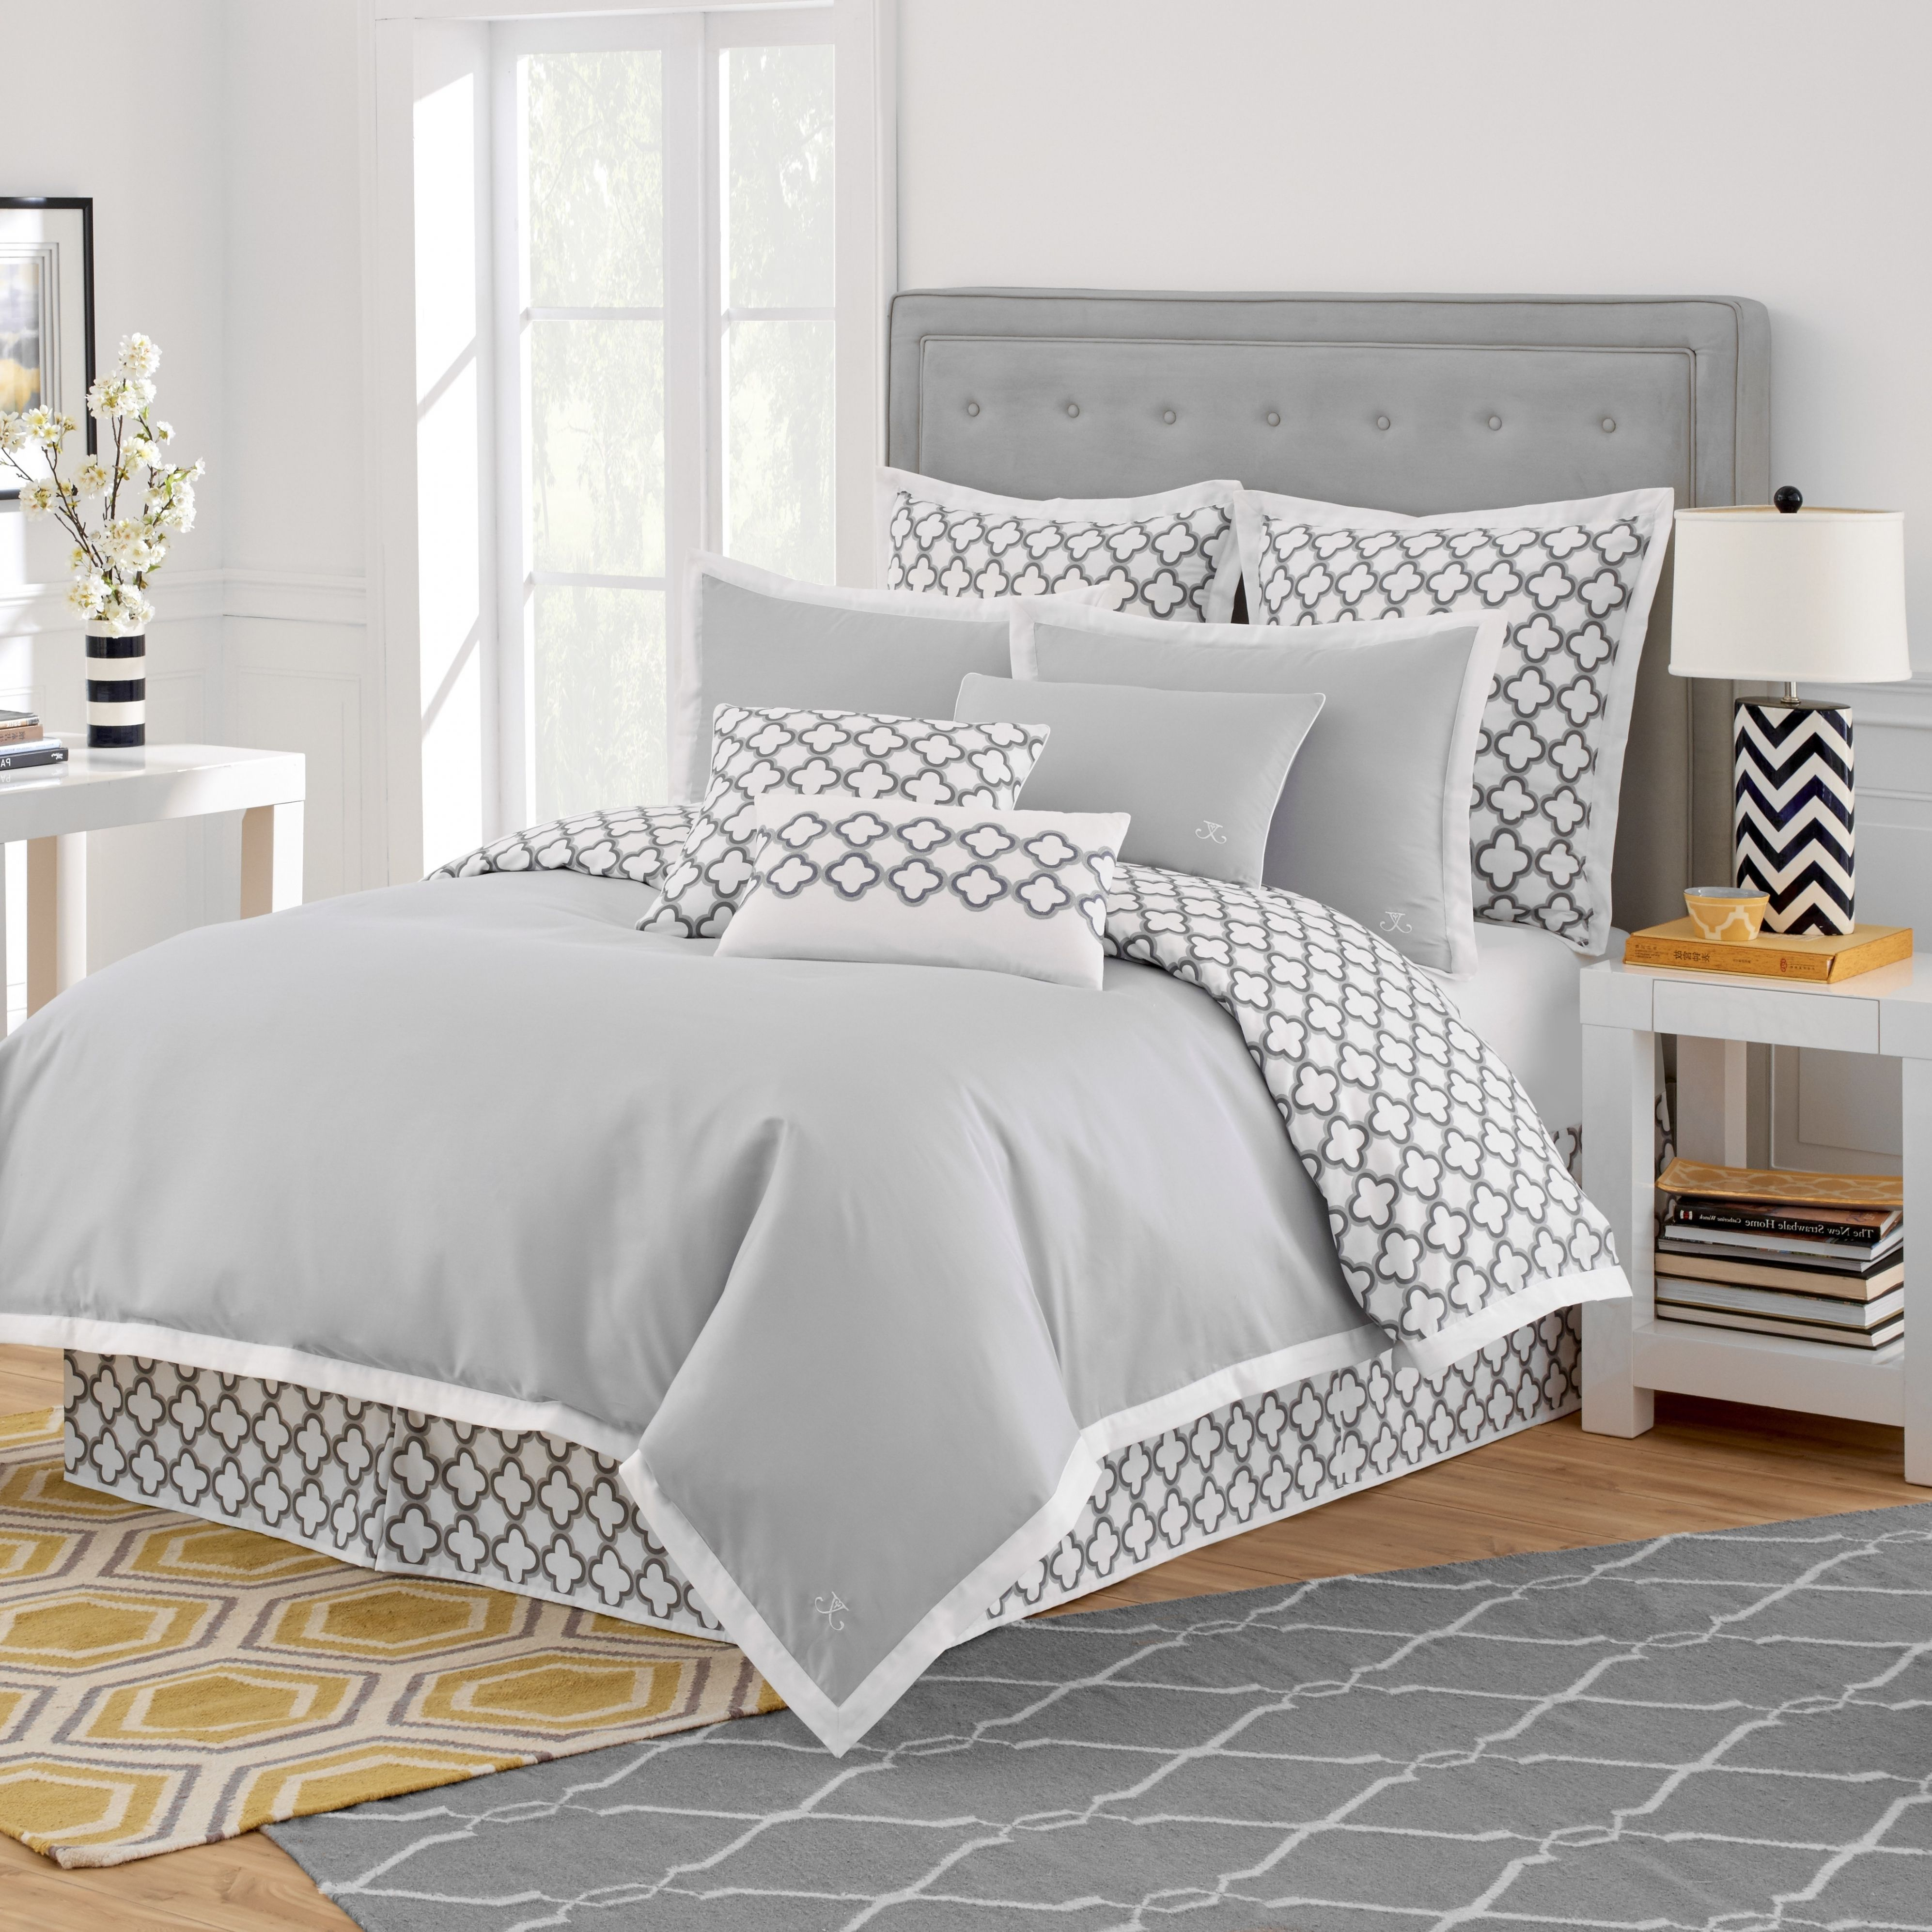 Extra Ordinary Design, Modern and Unique Bedding